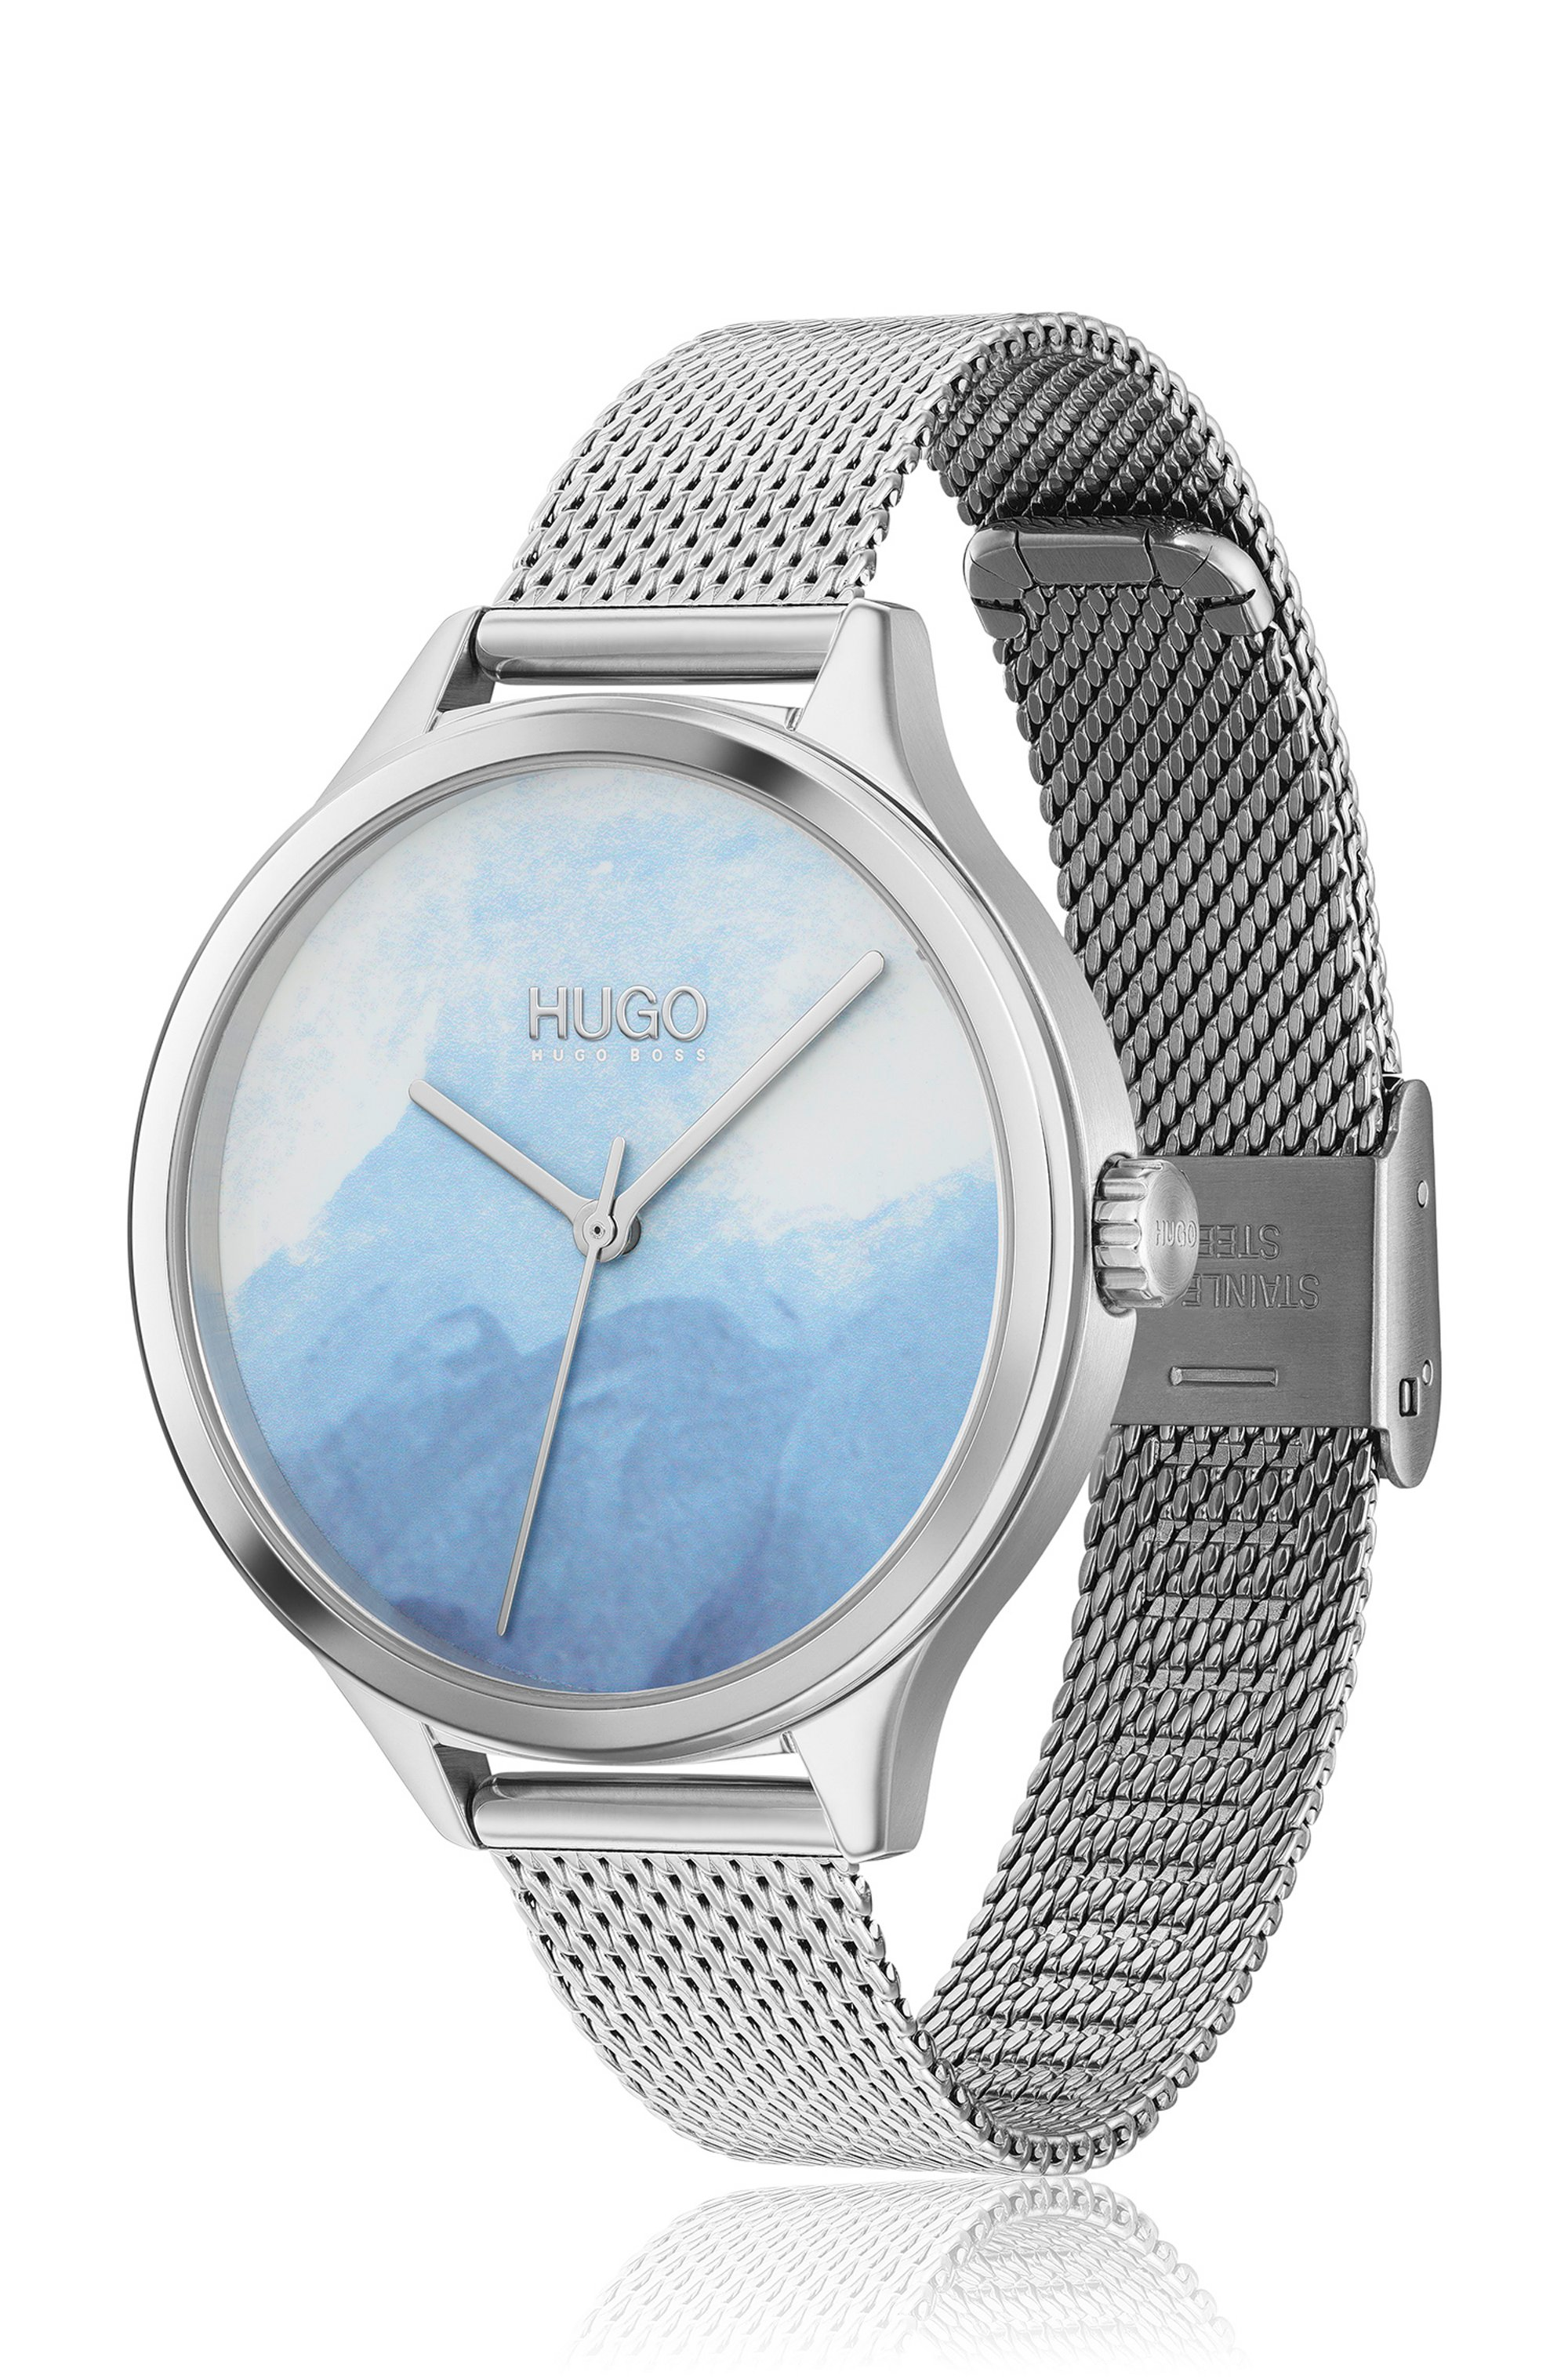 Stainless-steel watch with patterned blue dial